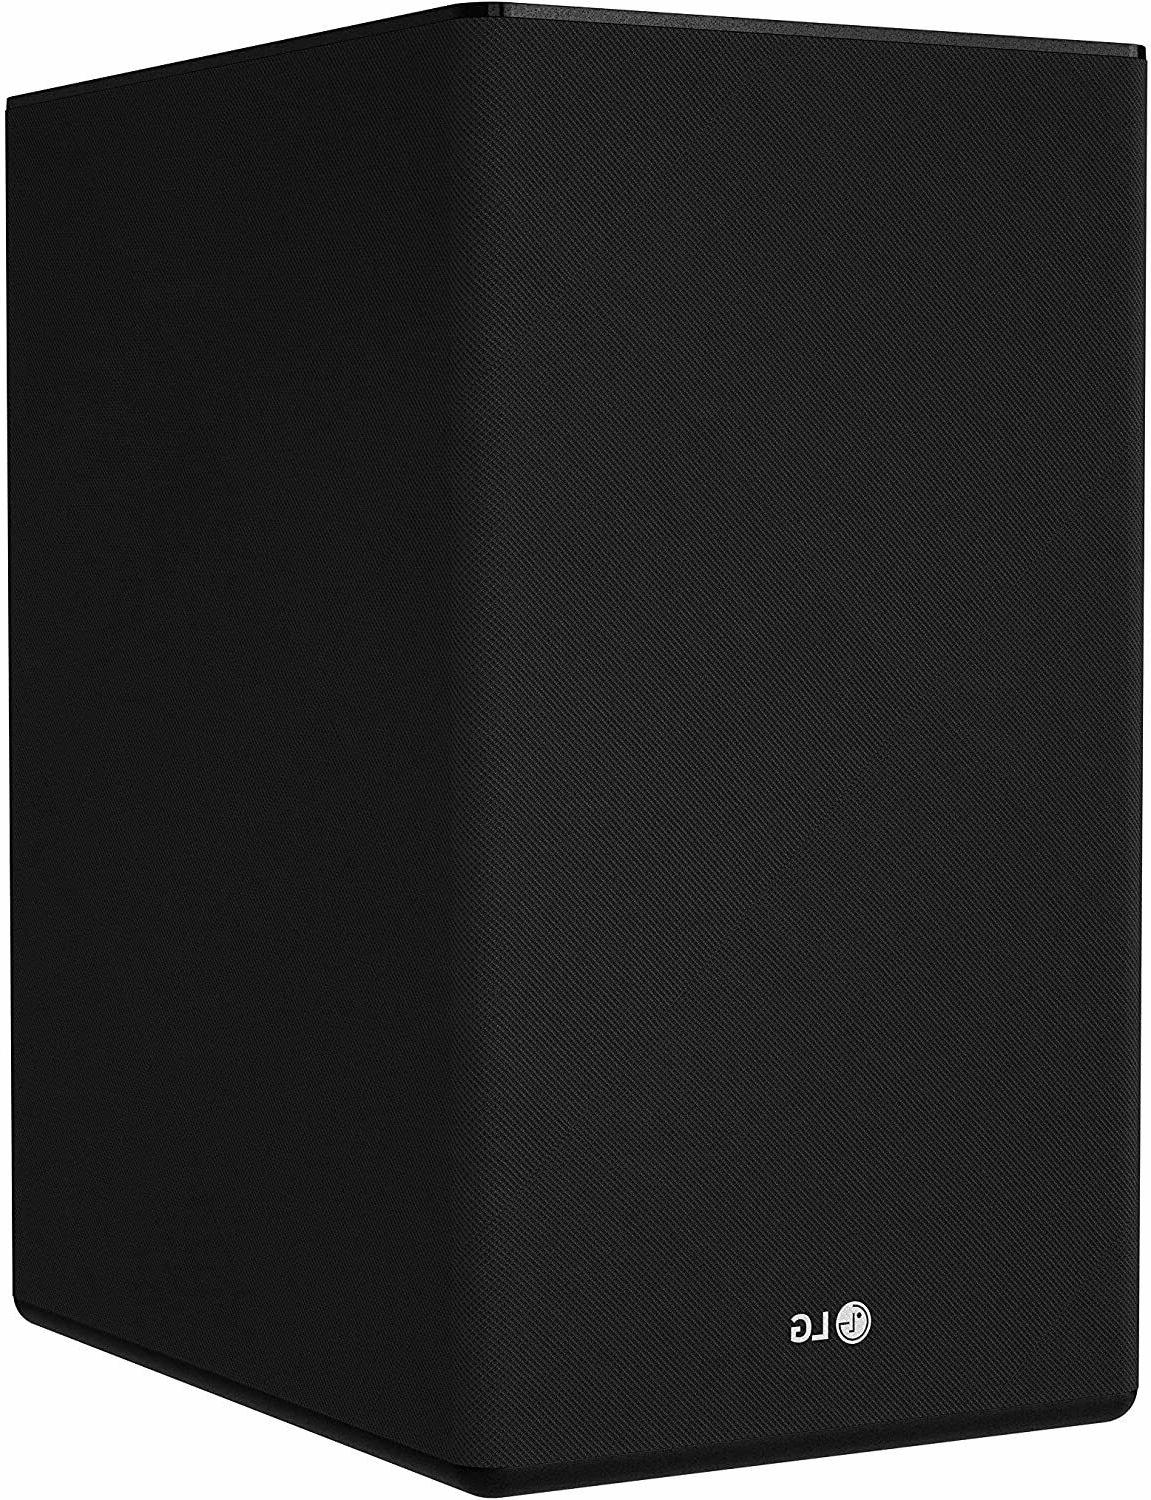 Sound with Atmos Google Assistant, Black